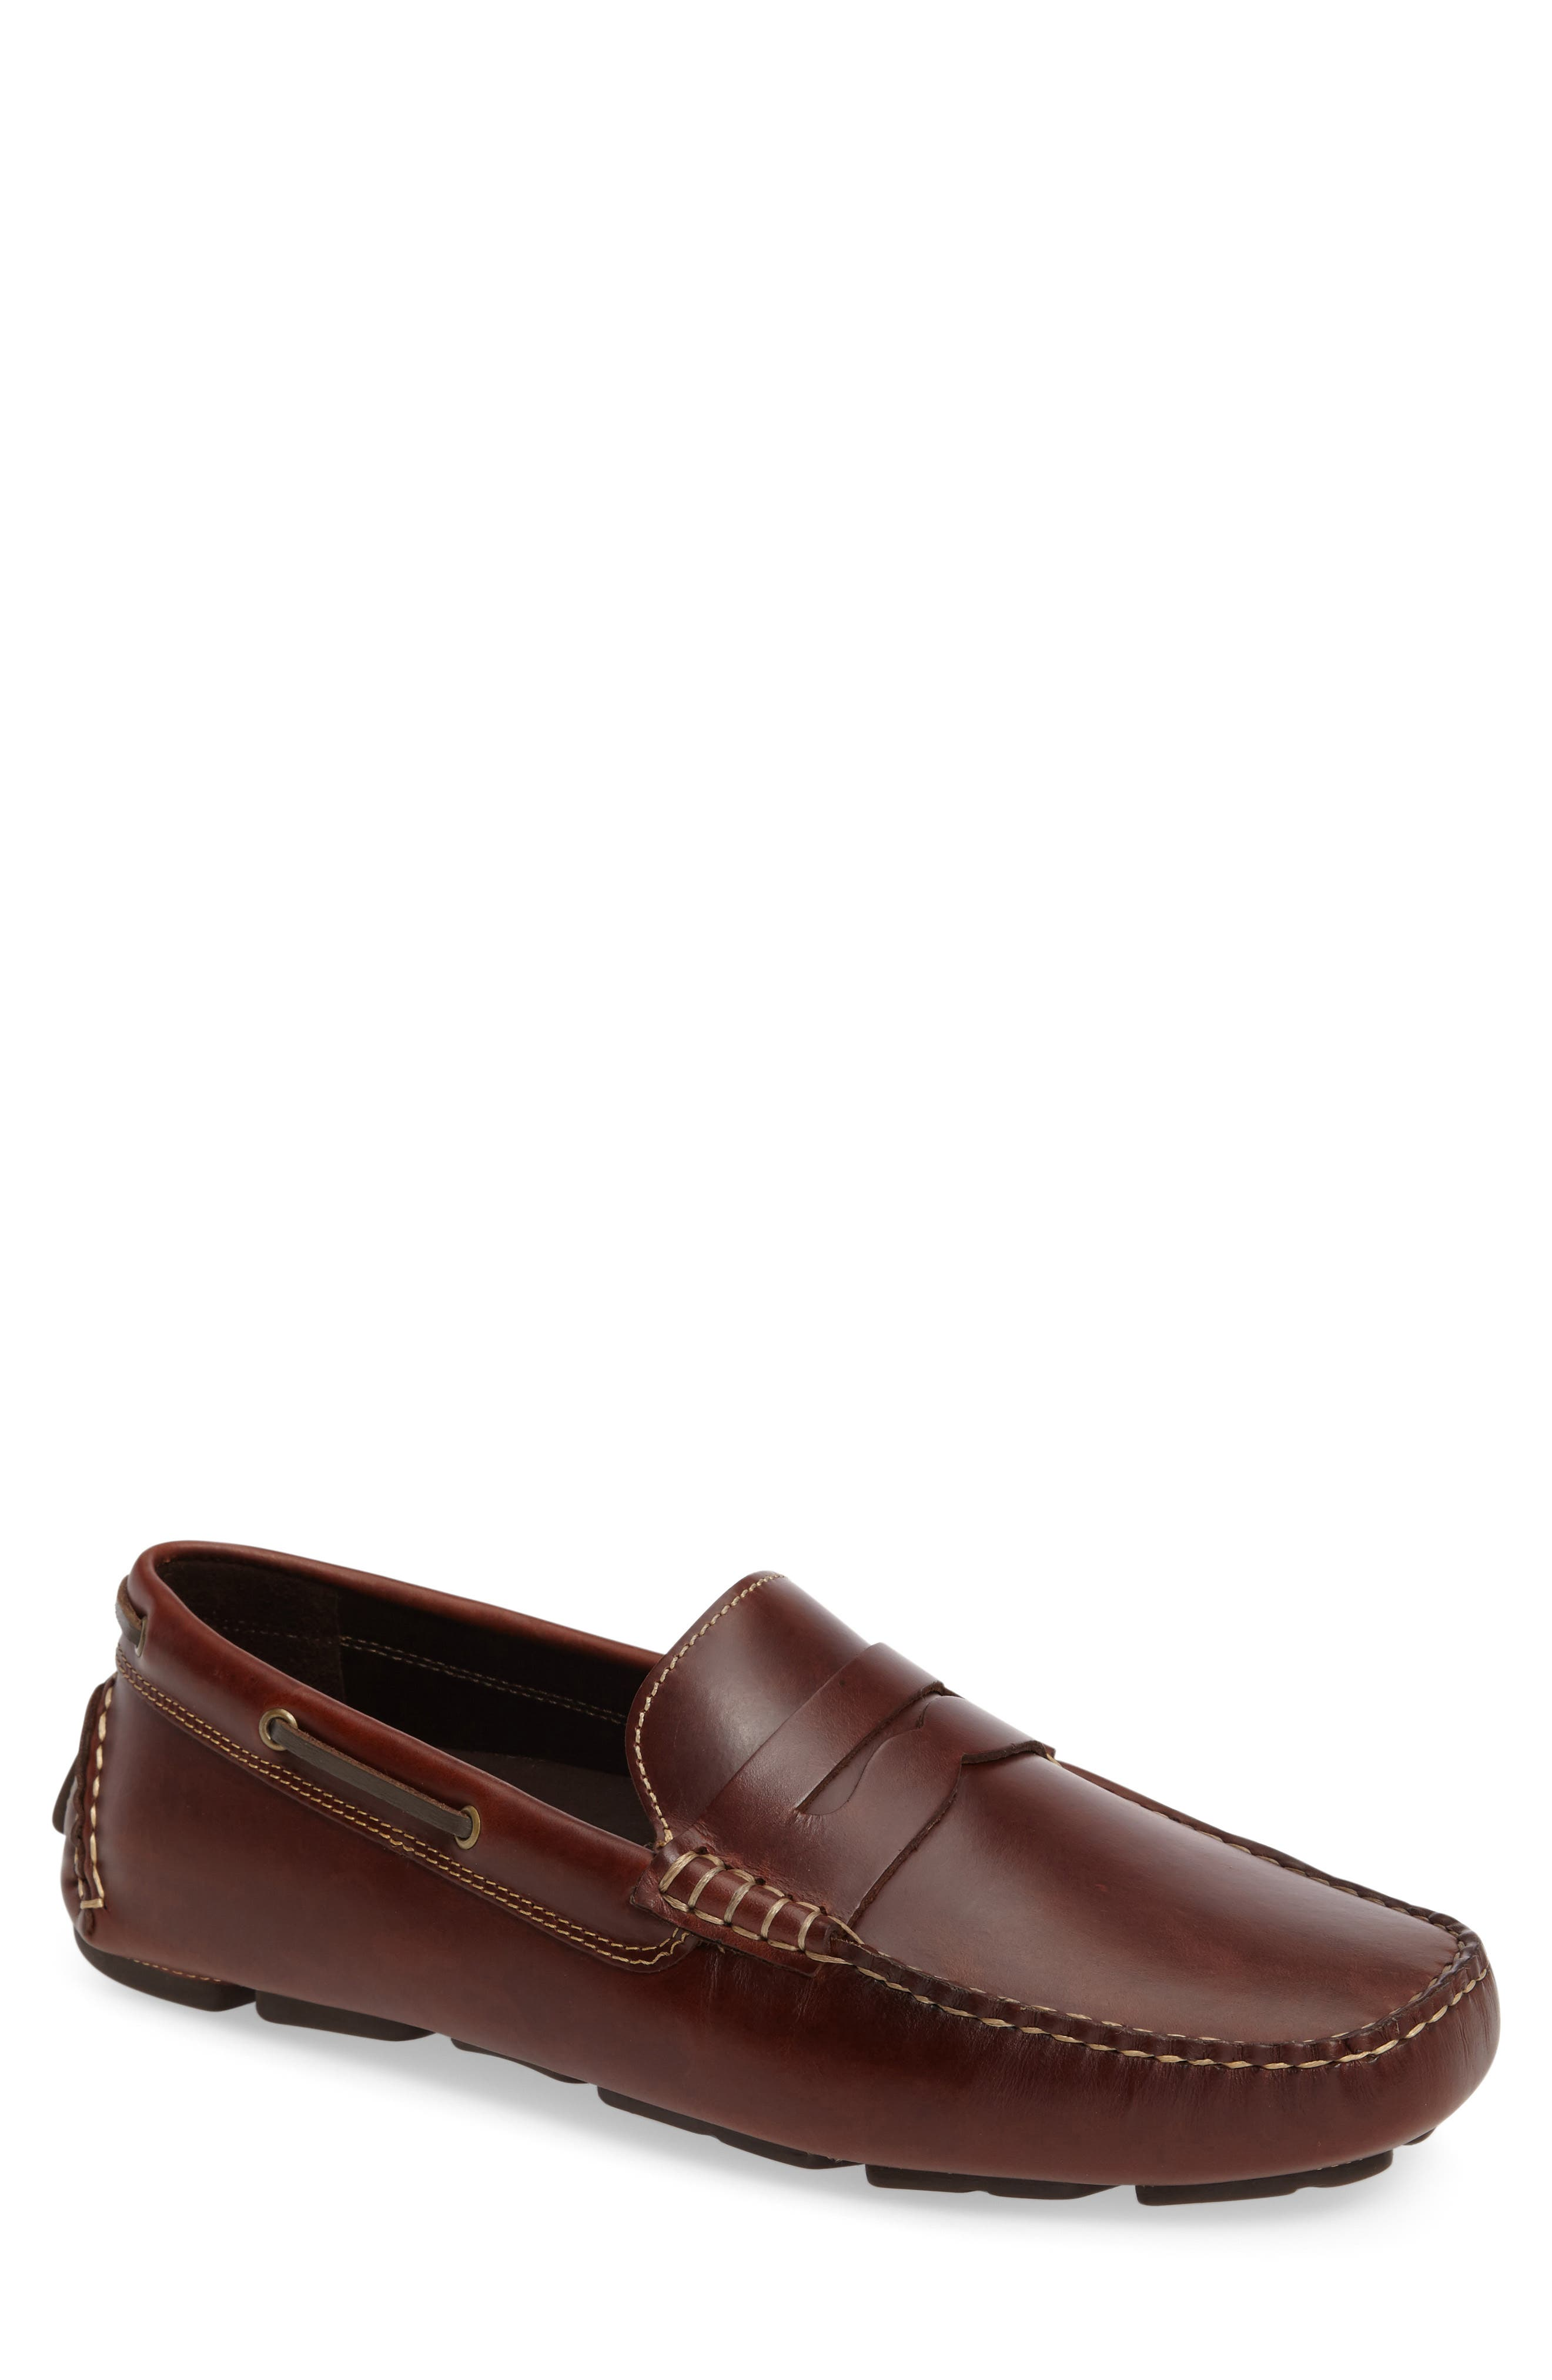 Main Image - Johnston & Murphy Gibson Penny Driving Loafer (Men)